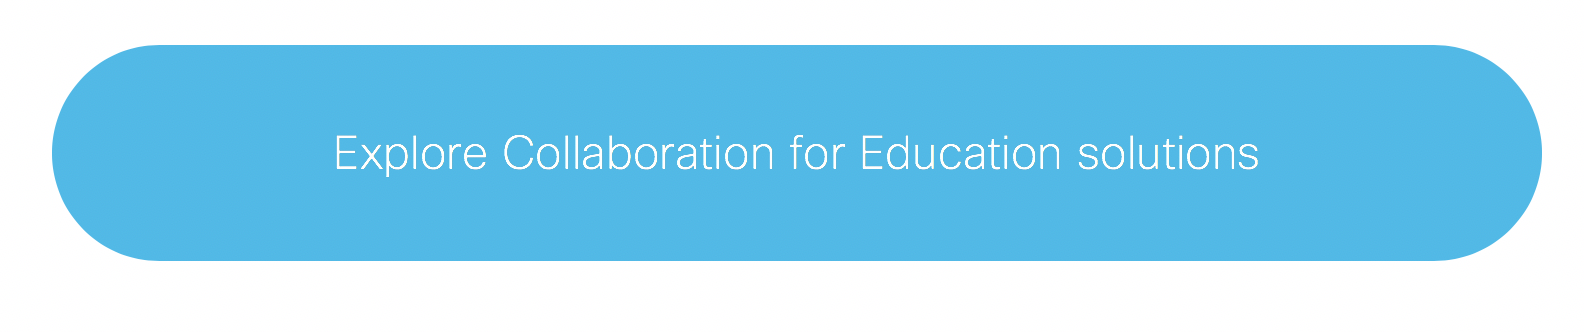 Explore Collaboration for Education solutions